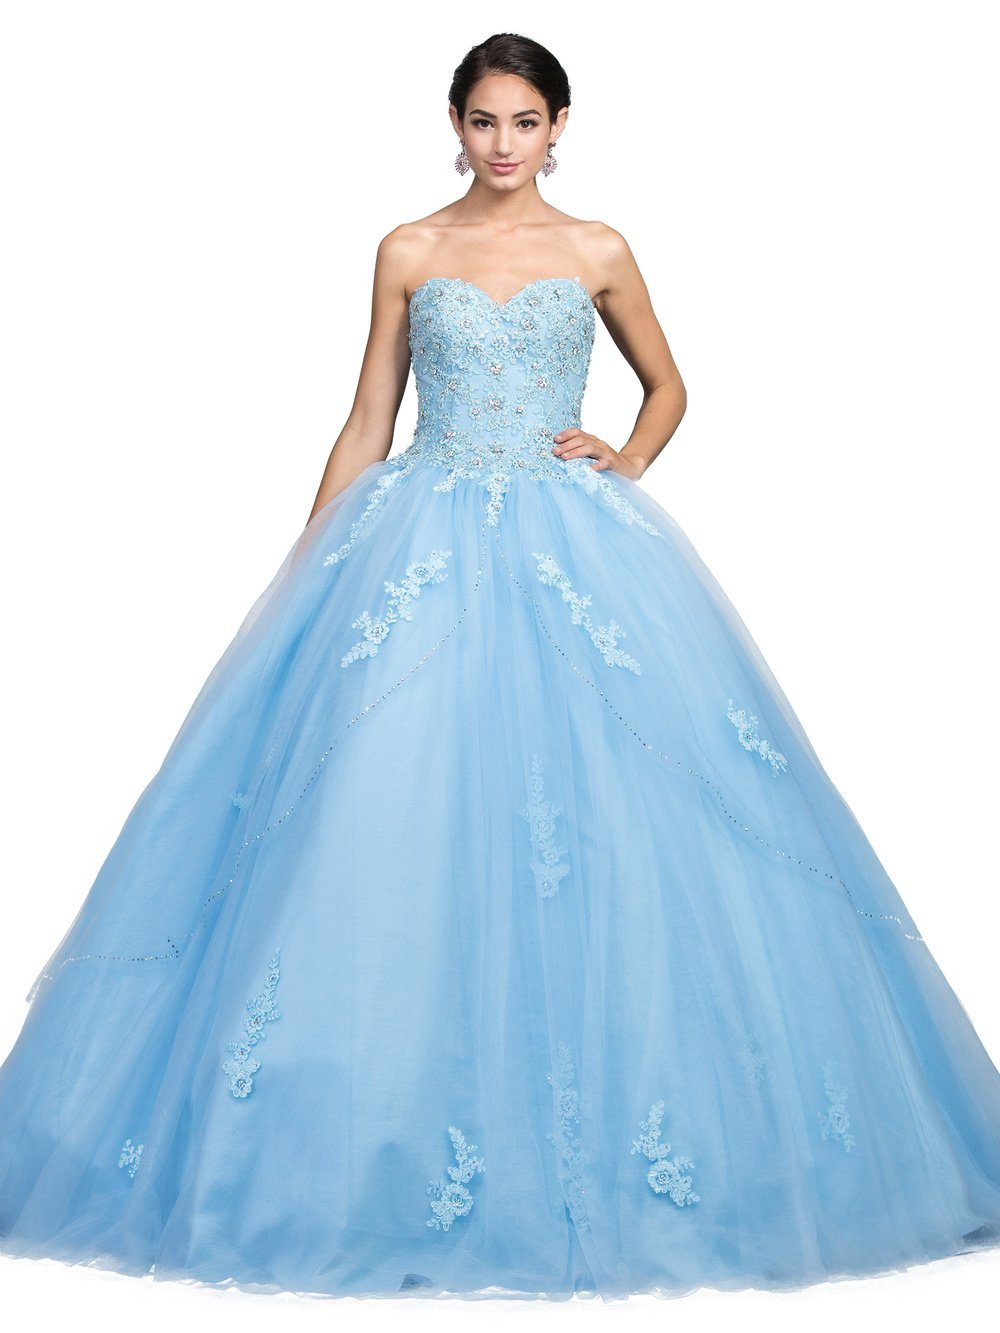 Sky blue Quinceanera dress Dq1224-Simply Fab Dress